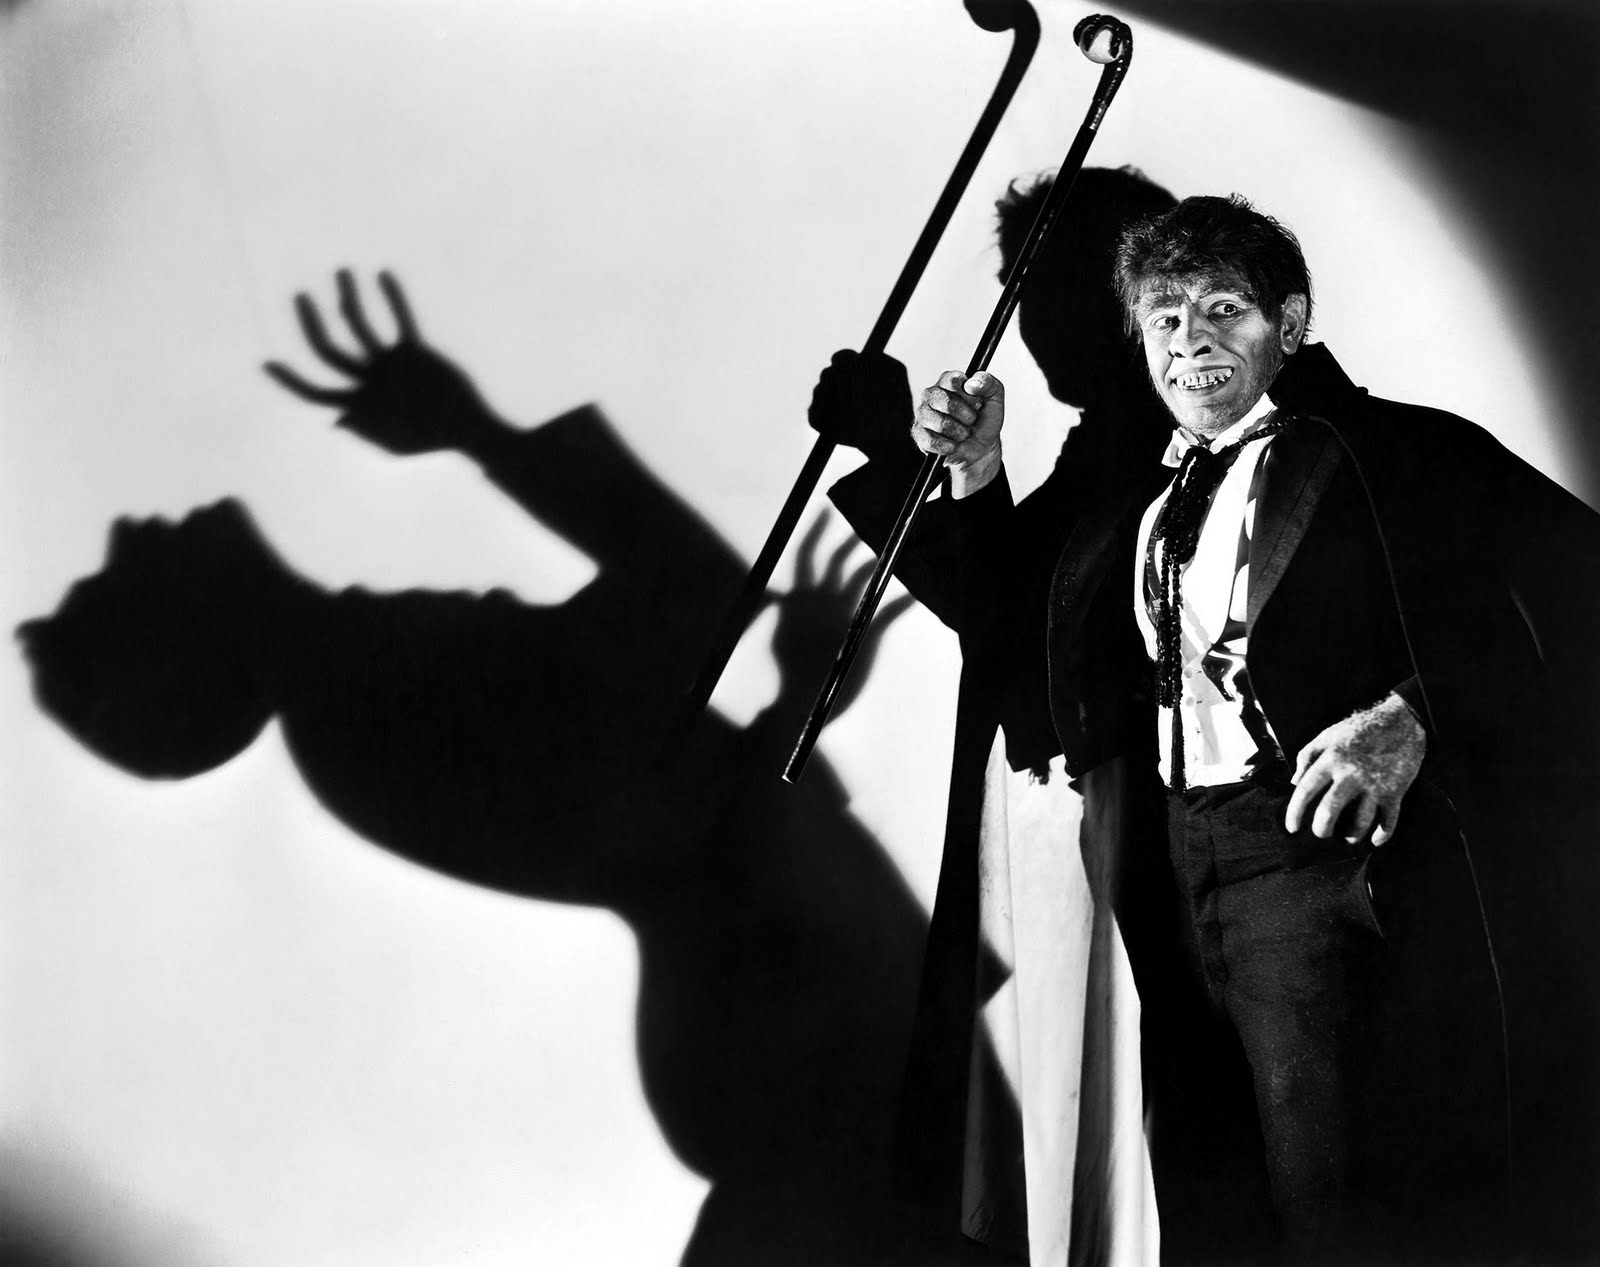 Dr.-Jekyll-and-Mr.-Hyde-Hyde-kills-March-shadow